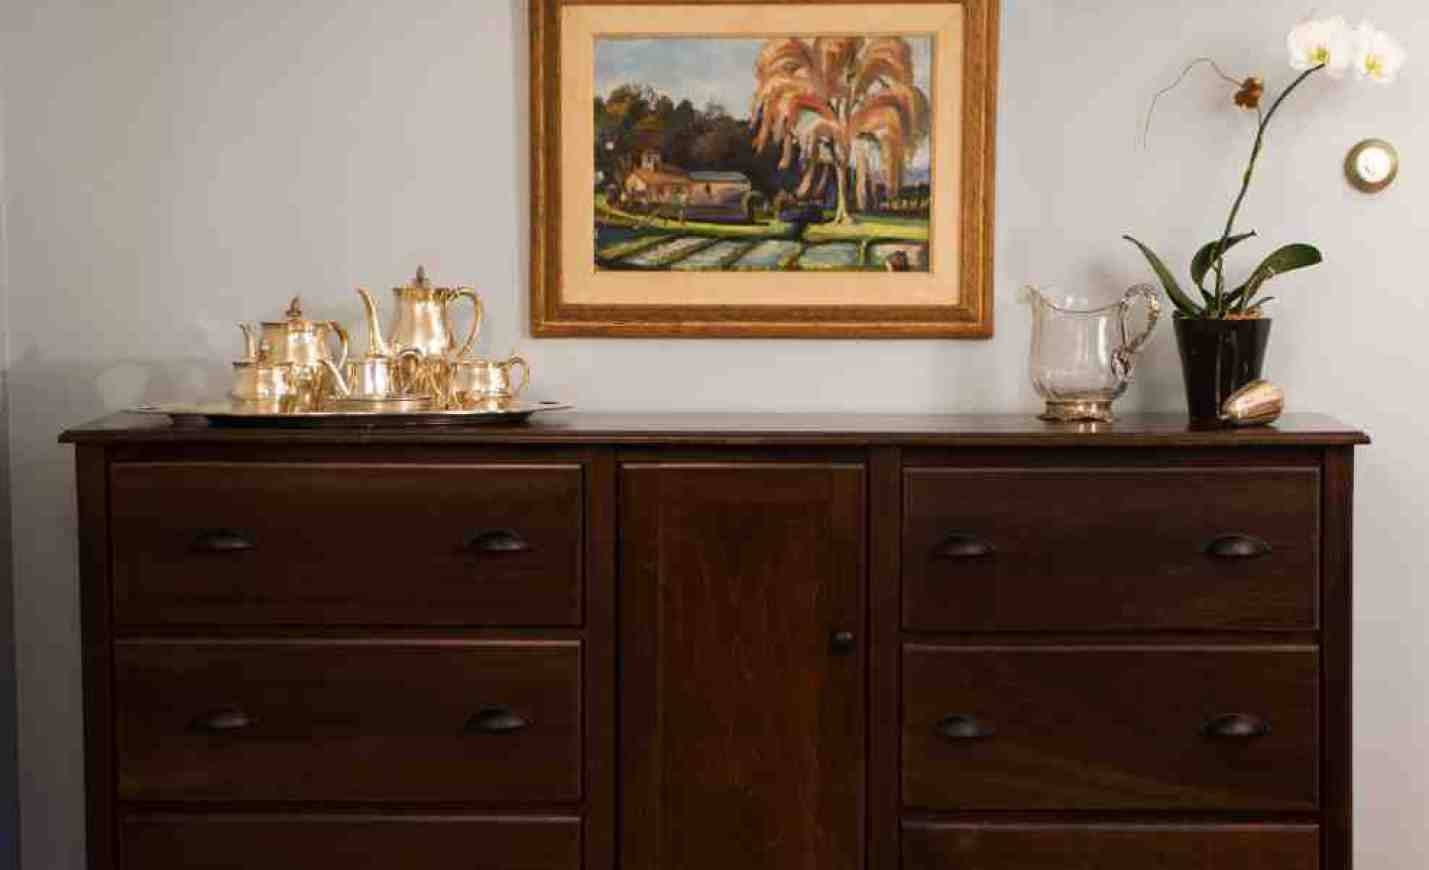 Sideboard : Sideboard Decor Awesome Living Room Sideboards Best 25 inside Hallway Sideboards (Image 7 of 15)